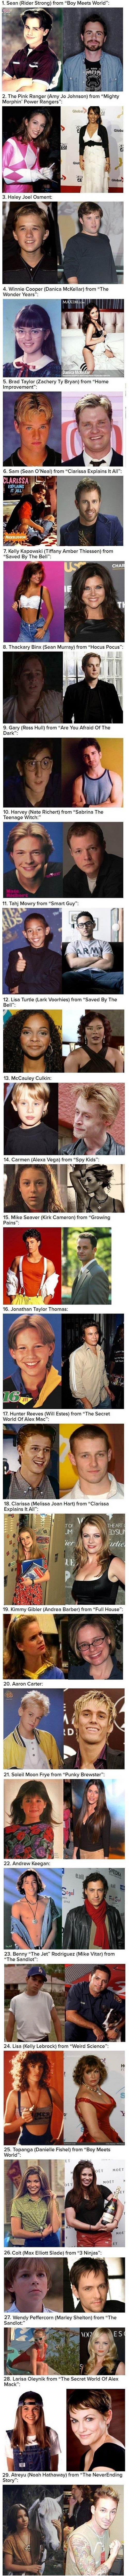 29 Of Your Childhood Crushes Then And Now